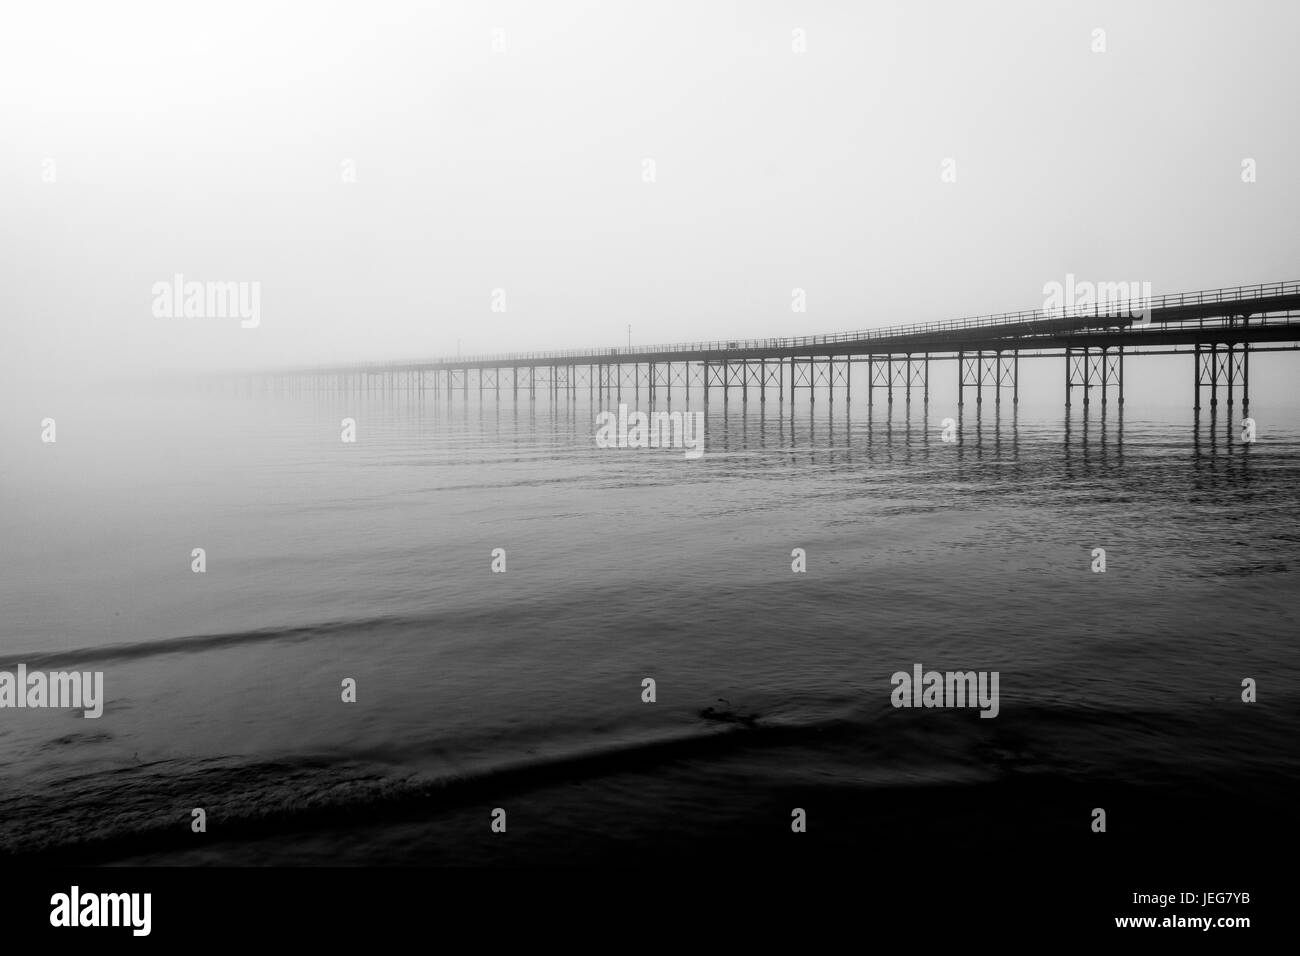 southend pier in the fog - Stock Image